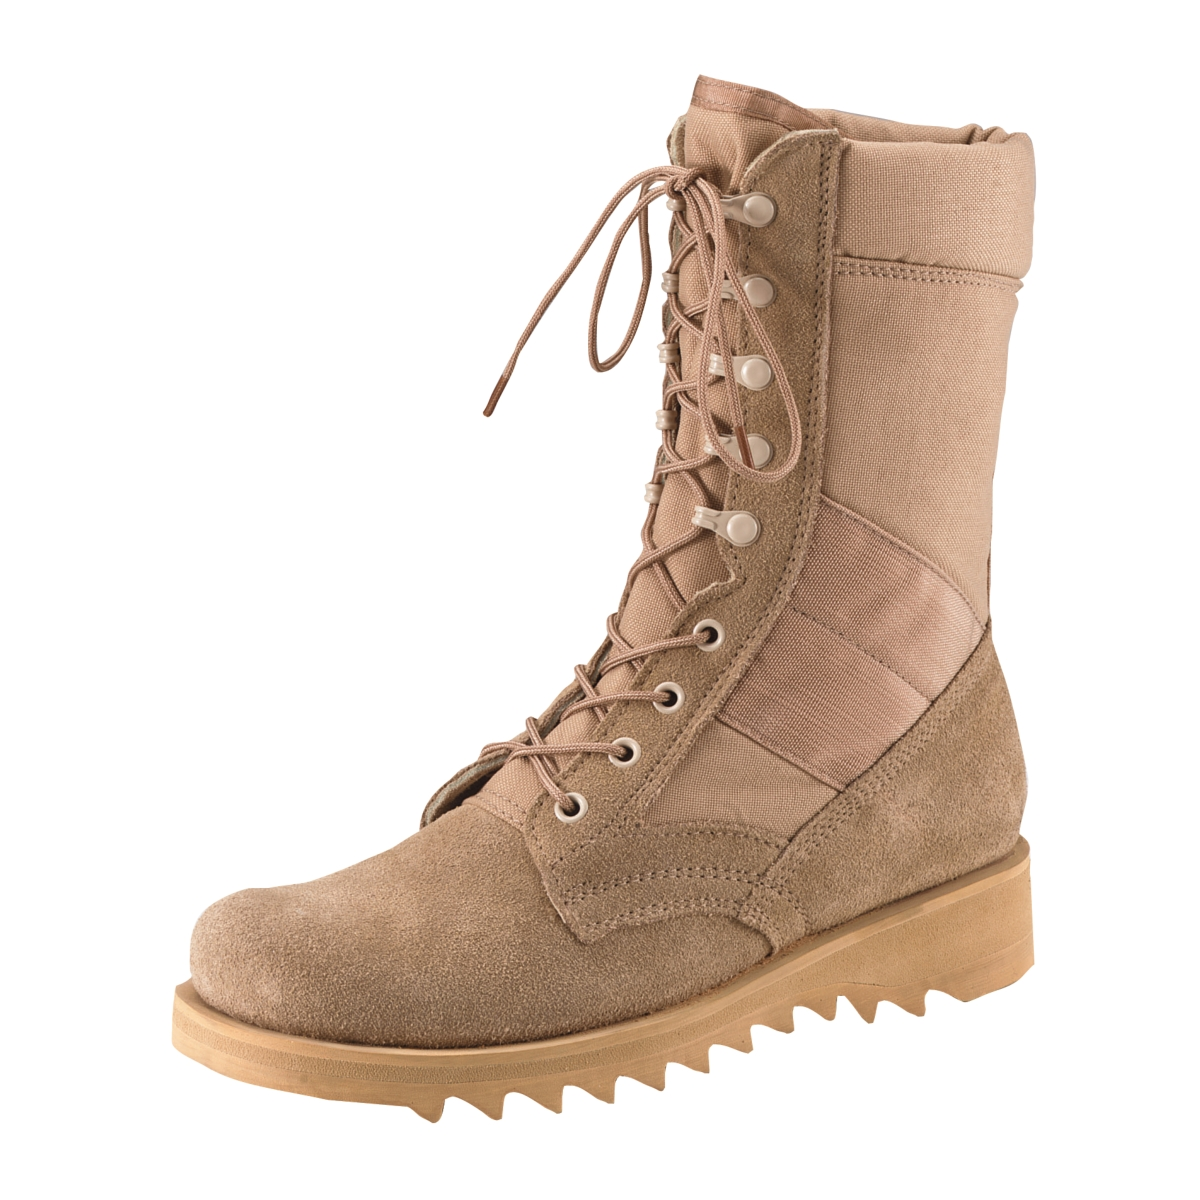 Army-Style-Desert-Combat-Boot-with-Wave-or-Ripple-Sole